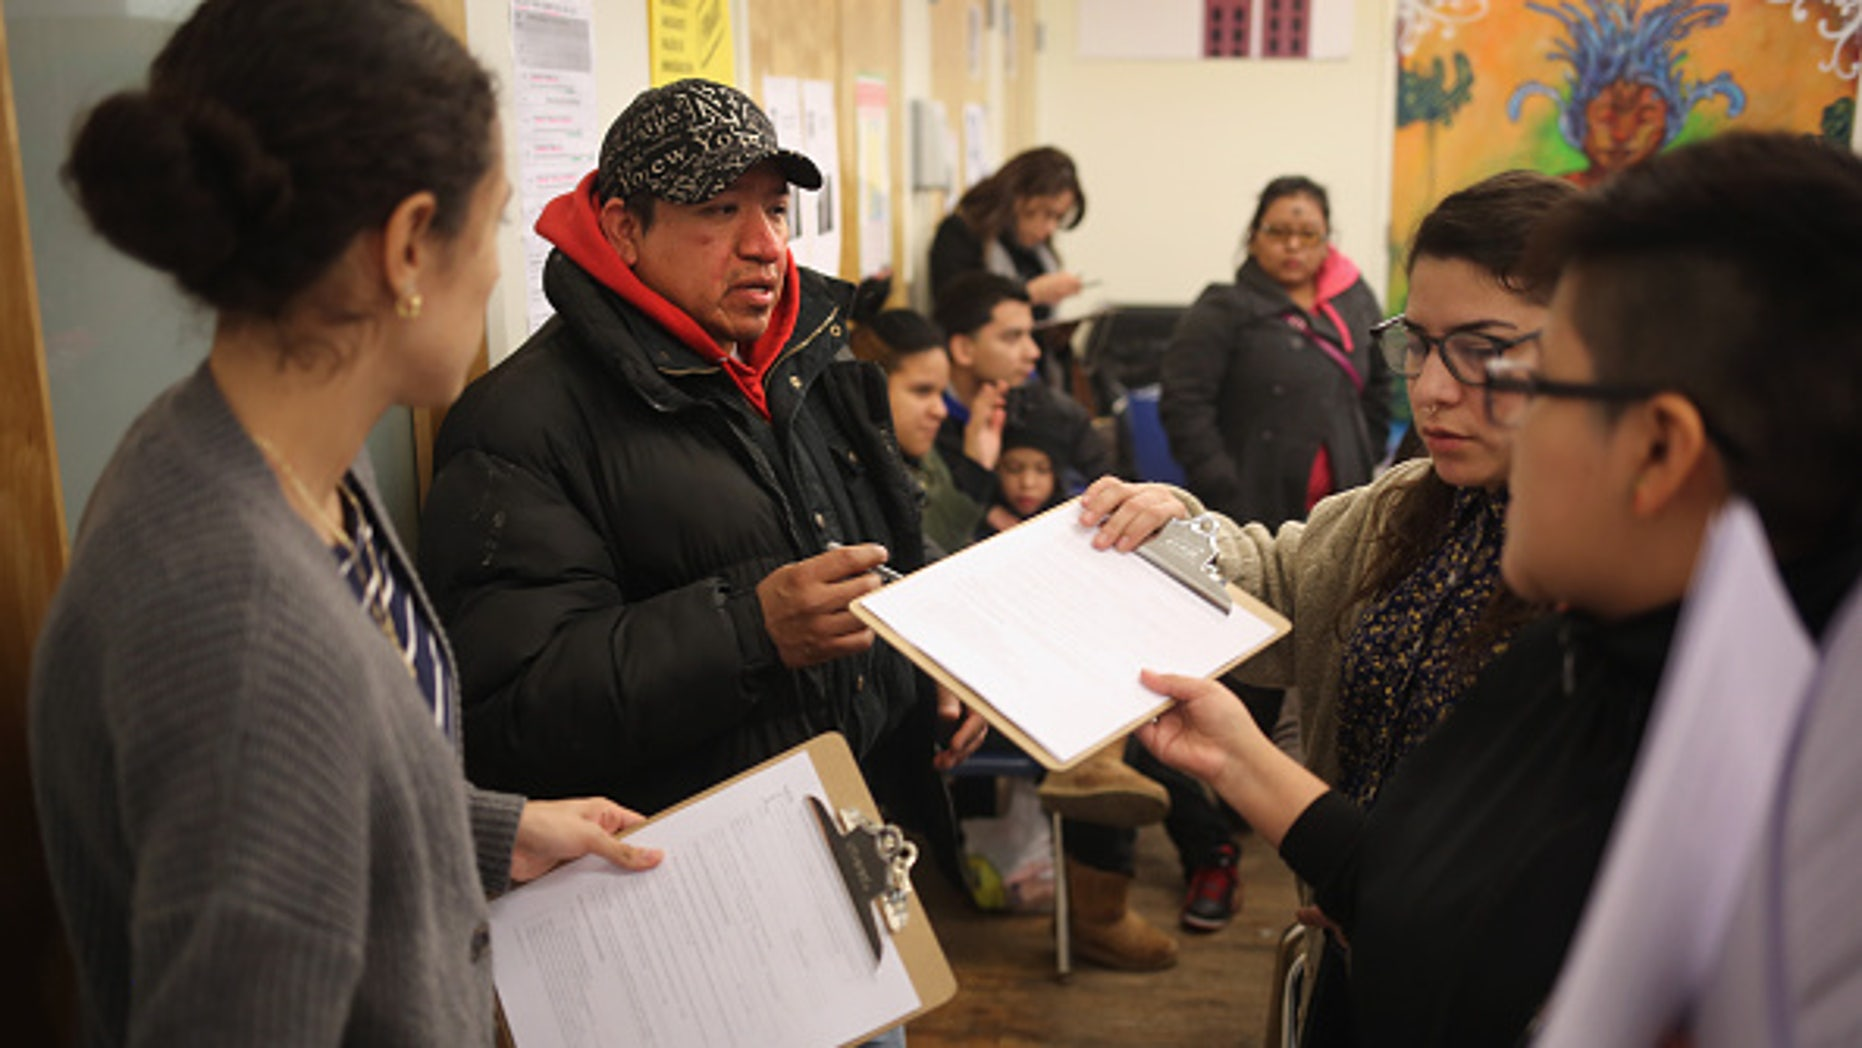 NEW YORK, NY - FEBRUARY 18:  Immigrants fill out forms for Deferred Action for Childhood Arrivals (DACA), at a workshop on February 18, 2015 in New York City. The immigrant advocacy group Make the Road New York holds weekly workshops to help immigrants get legal status under DACA to work in the United States. An expansion of the national program, scheduled for this week, was frozen by a ruling from a Texas federal judge. The Obama Administration plans to appeal the ruling and, if sussessful, DACA would allow legalization of up to two million immigrants who entered the United States before they were age 16.  (Photo by John Moore/Getty Images)